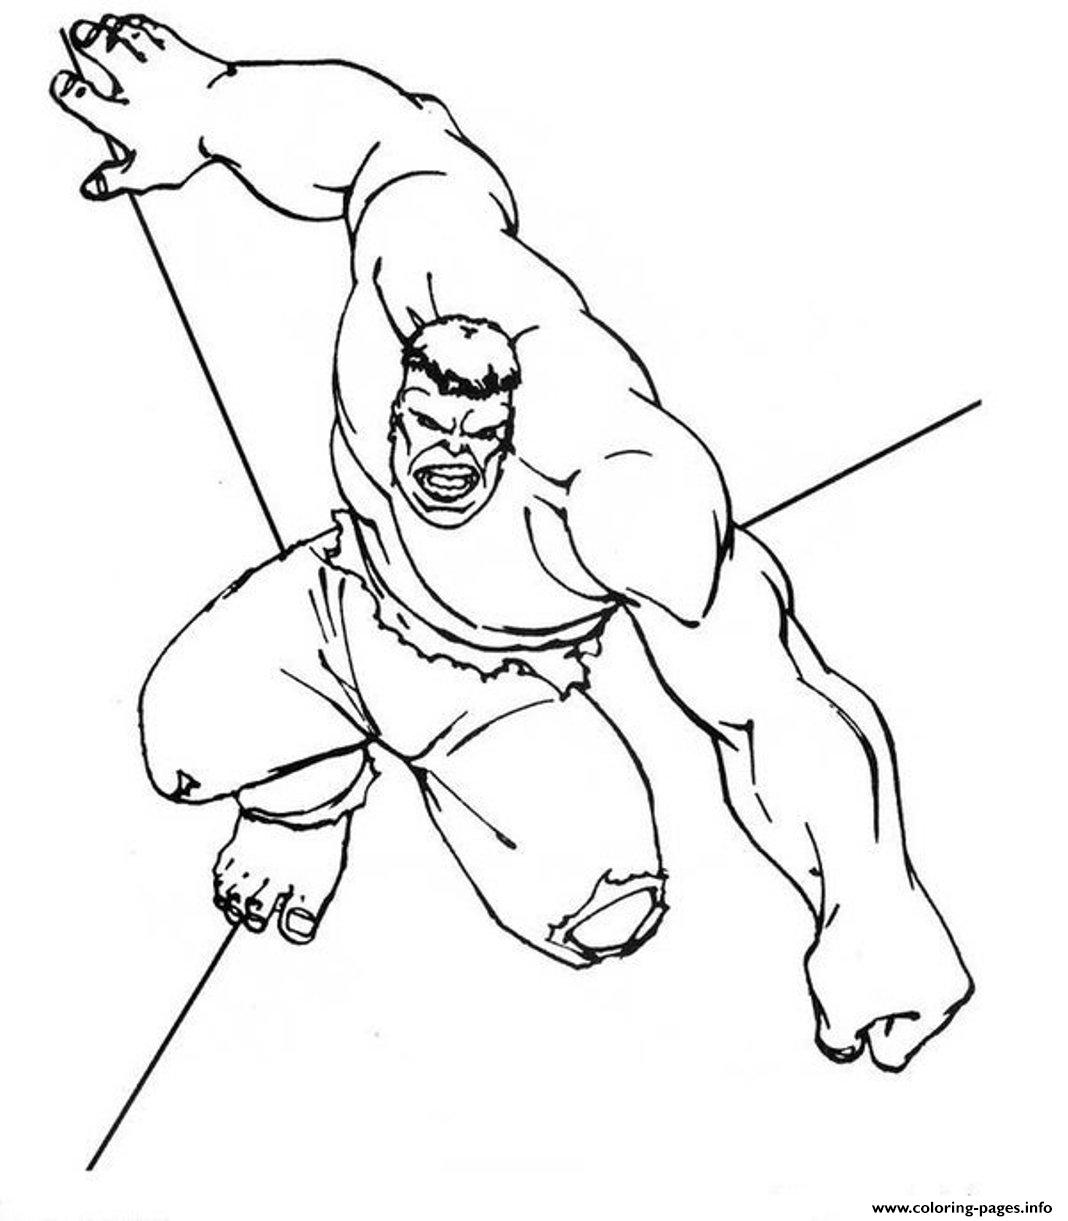 The Strong Man Hulk S3331 Coloring Pages Print Download